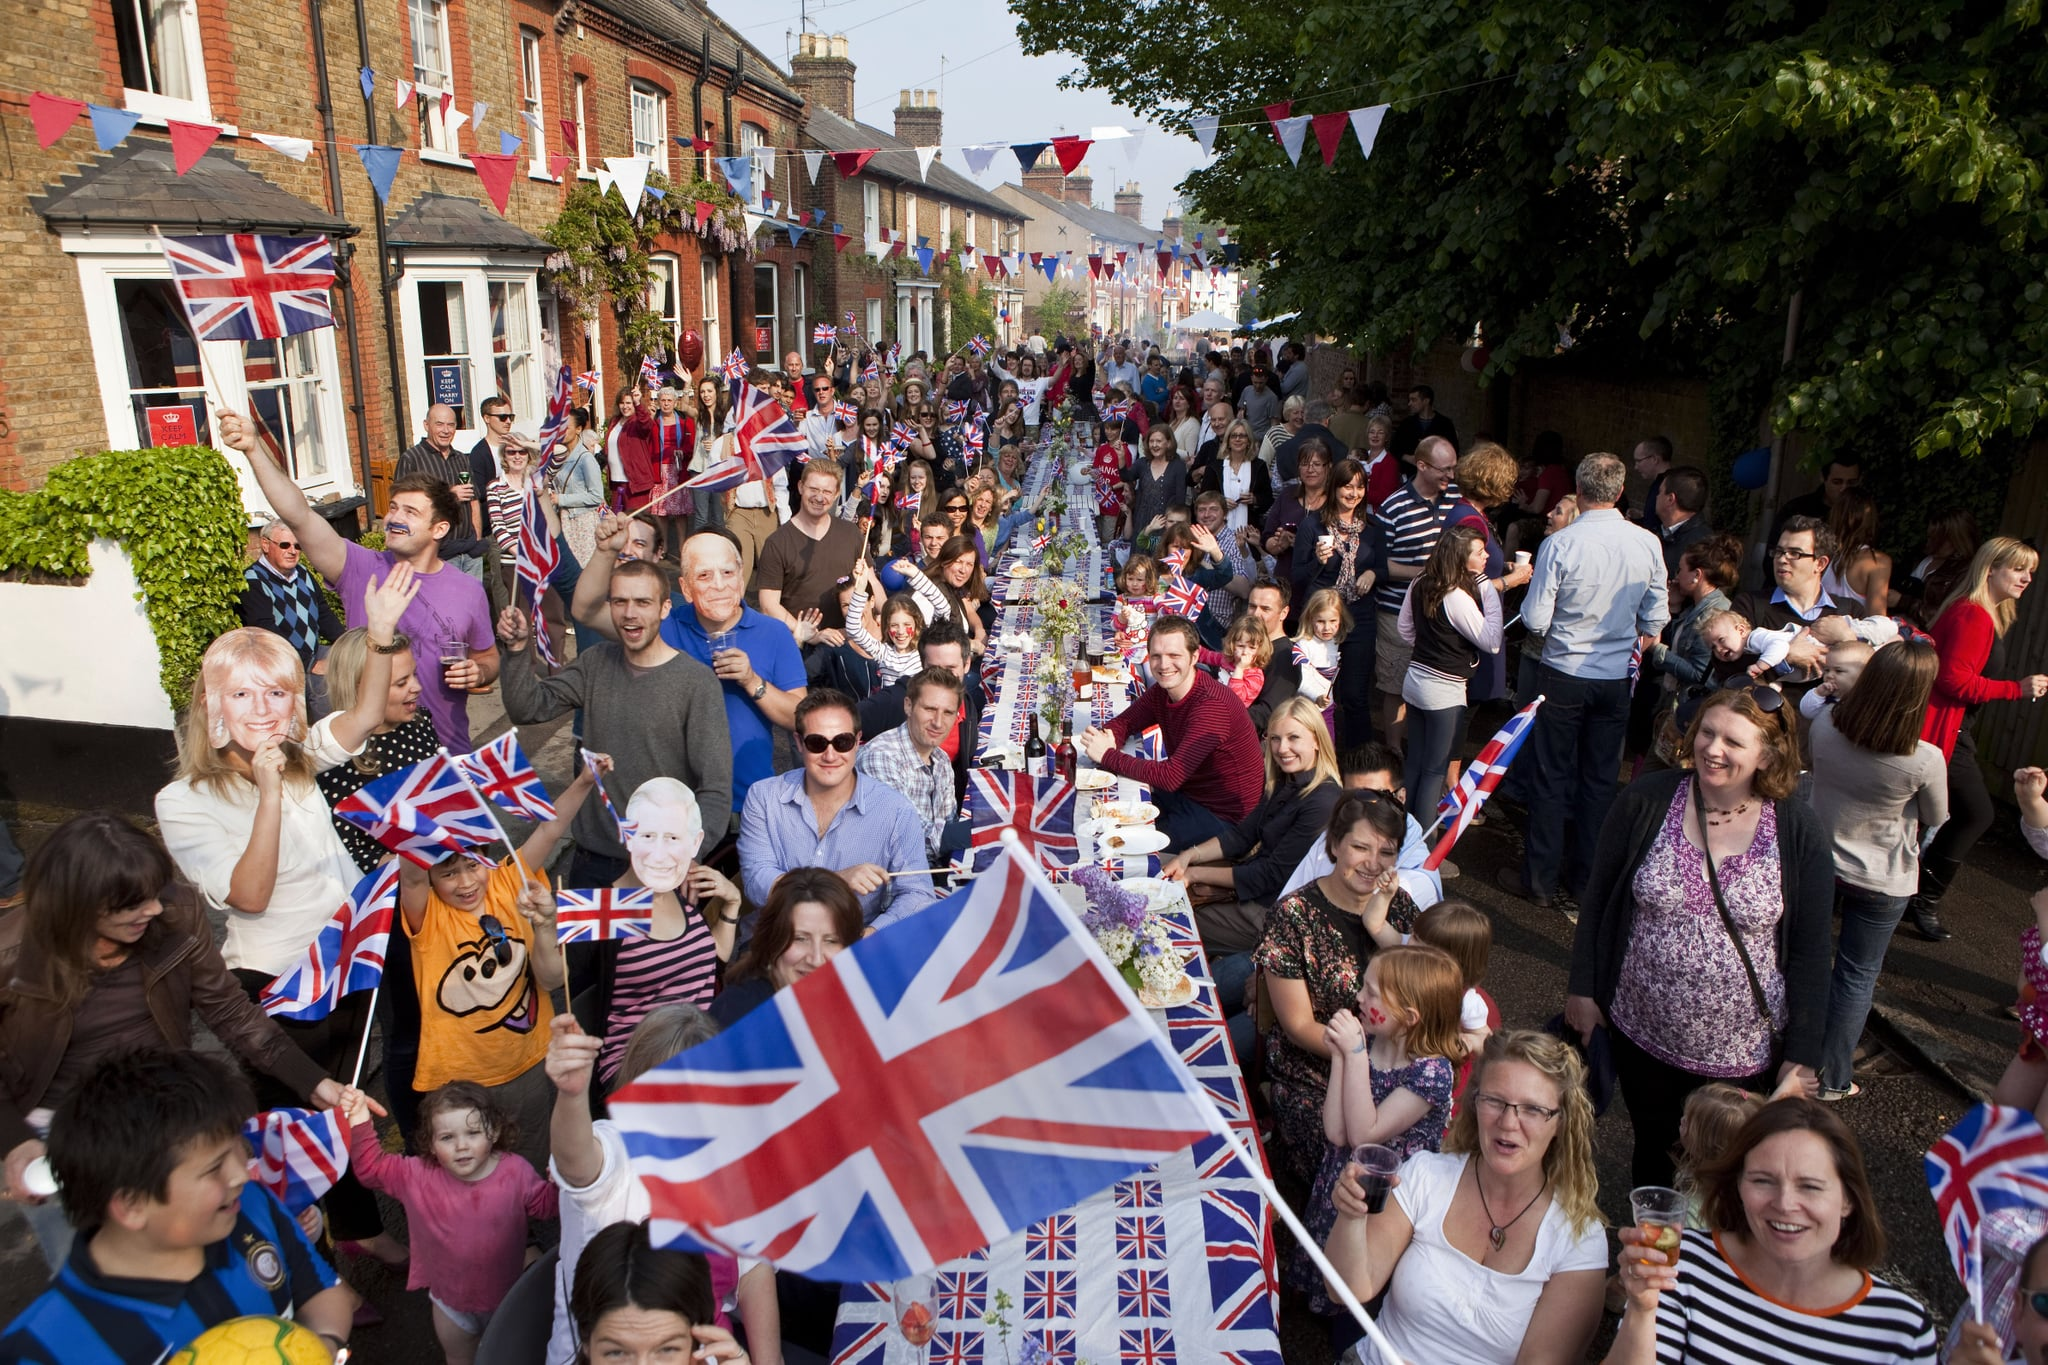 BERKHAMSTED, UNITED KINGDOM - APRIL 29:  Residents at a Royal Wedding Street Party celebrate the marriage of Prince William and Catherine Middleton, in Chapel Street in Berkhamsted on April 29, 2011 in Berkhamsted, England. The marriage of Prince William, the second in line to the British throne, to Catherine Middleton is being held in London today. The Archbishop of Canterbury conducted the service which was attended by 1900 guests, including foreign Royal family members and heads of state. Thousands of well-wishers from around the world have also flocked to London to witness the spectacle and pageantry of the Royal Wedding and street parties are being held throughout the UK. (Photo by David Levenson/Getty Images)